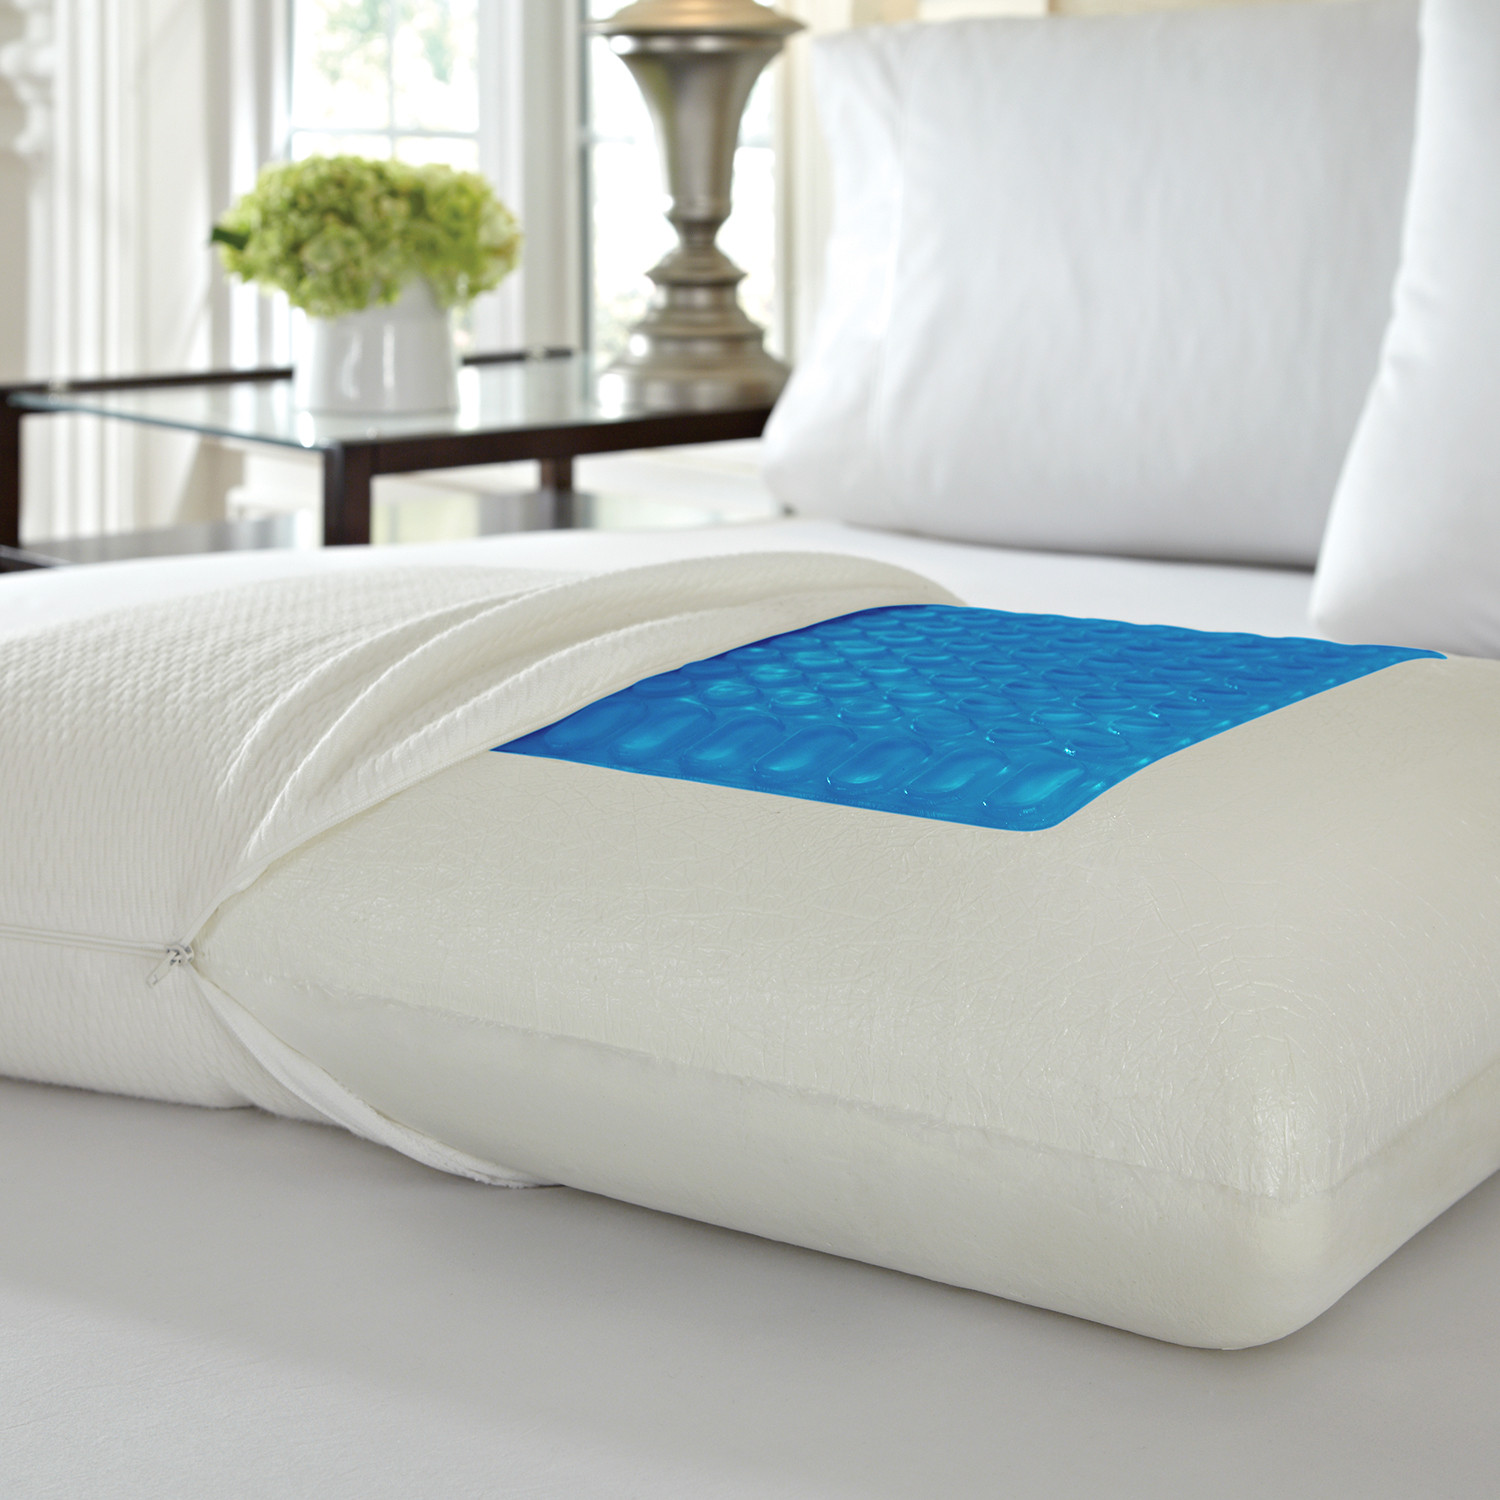 Pure Rest Gel Top Memory Foam Pillow Gel Top - Pure Rest by Rio Home Fashions - Touch of Modern